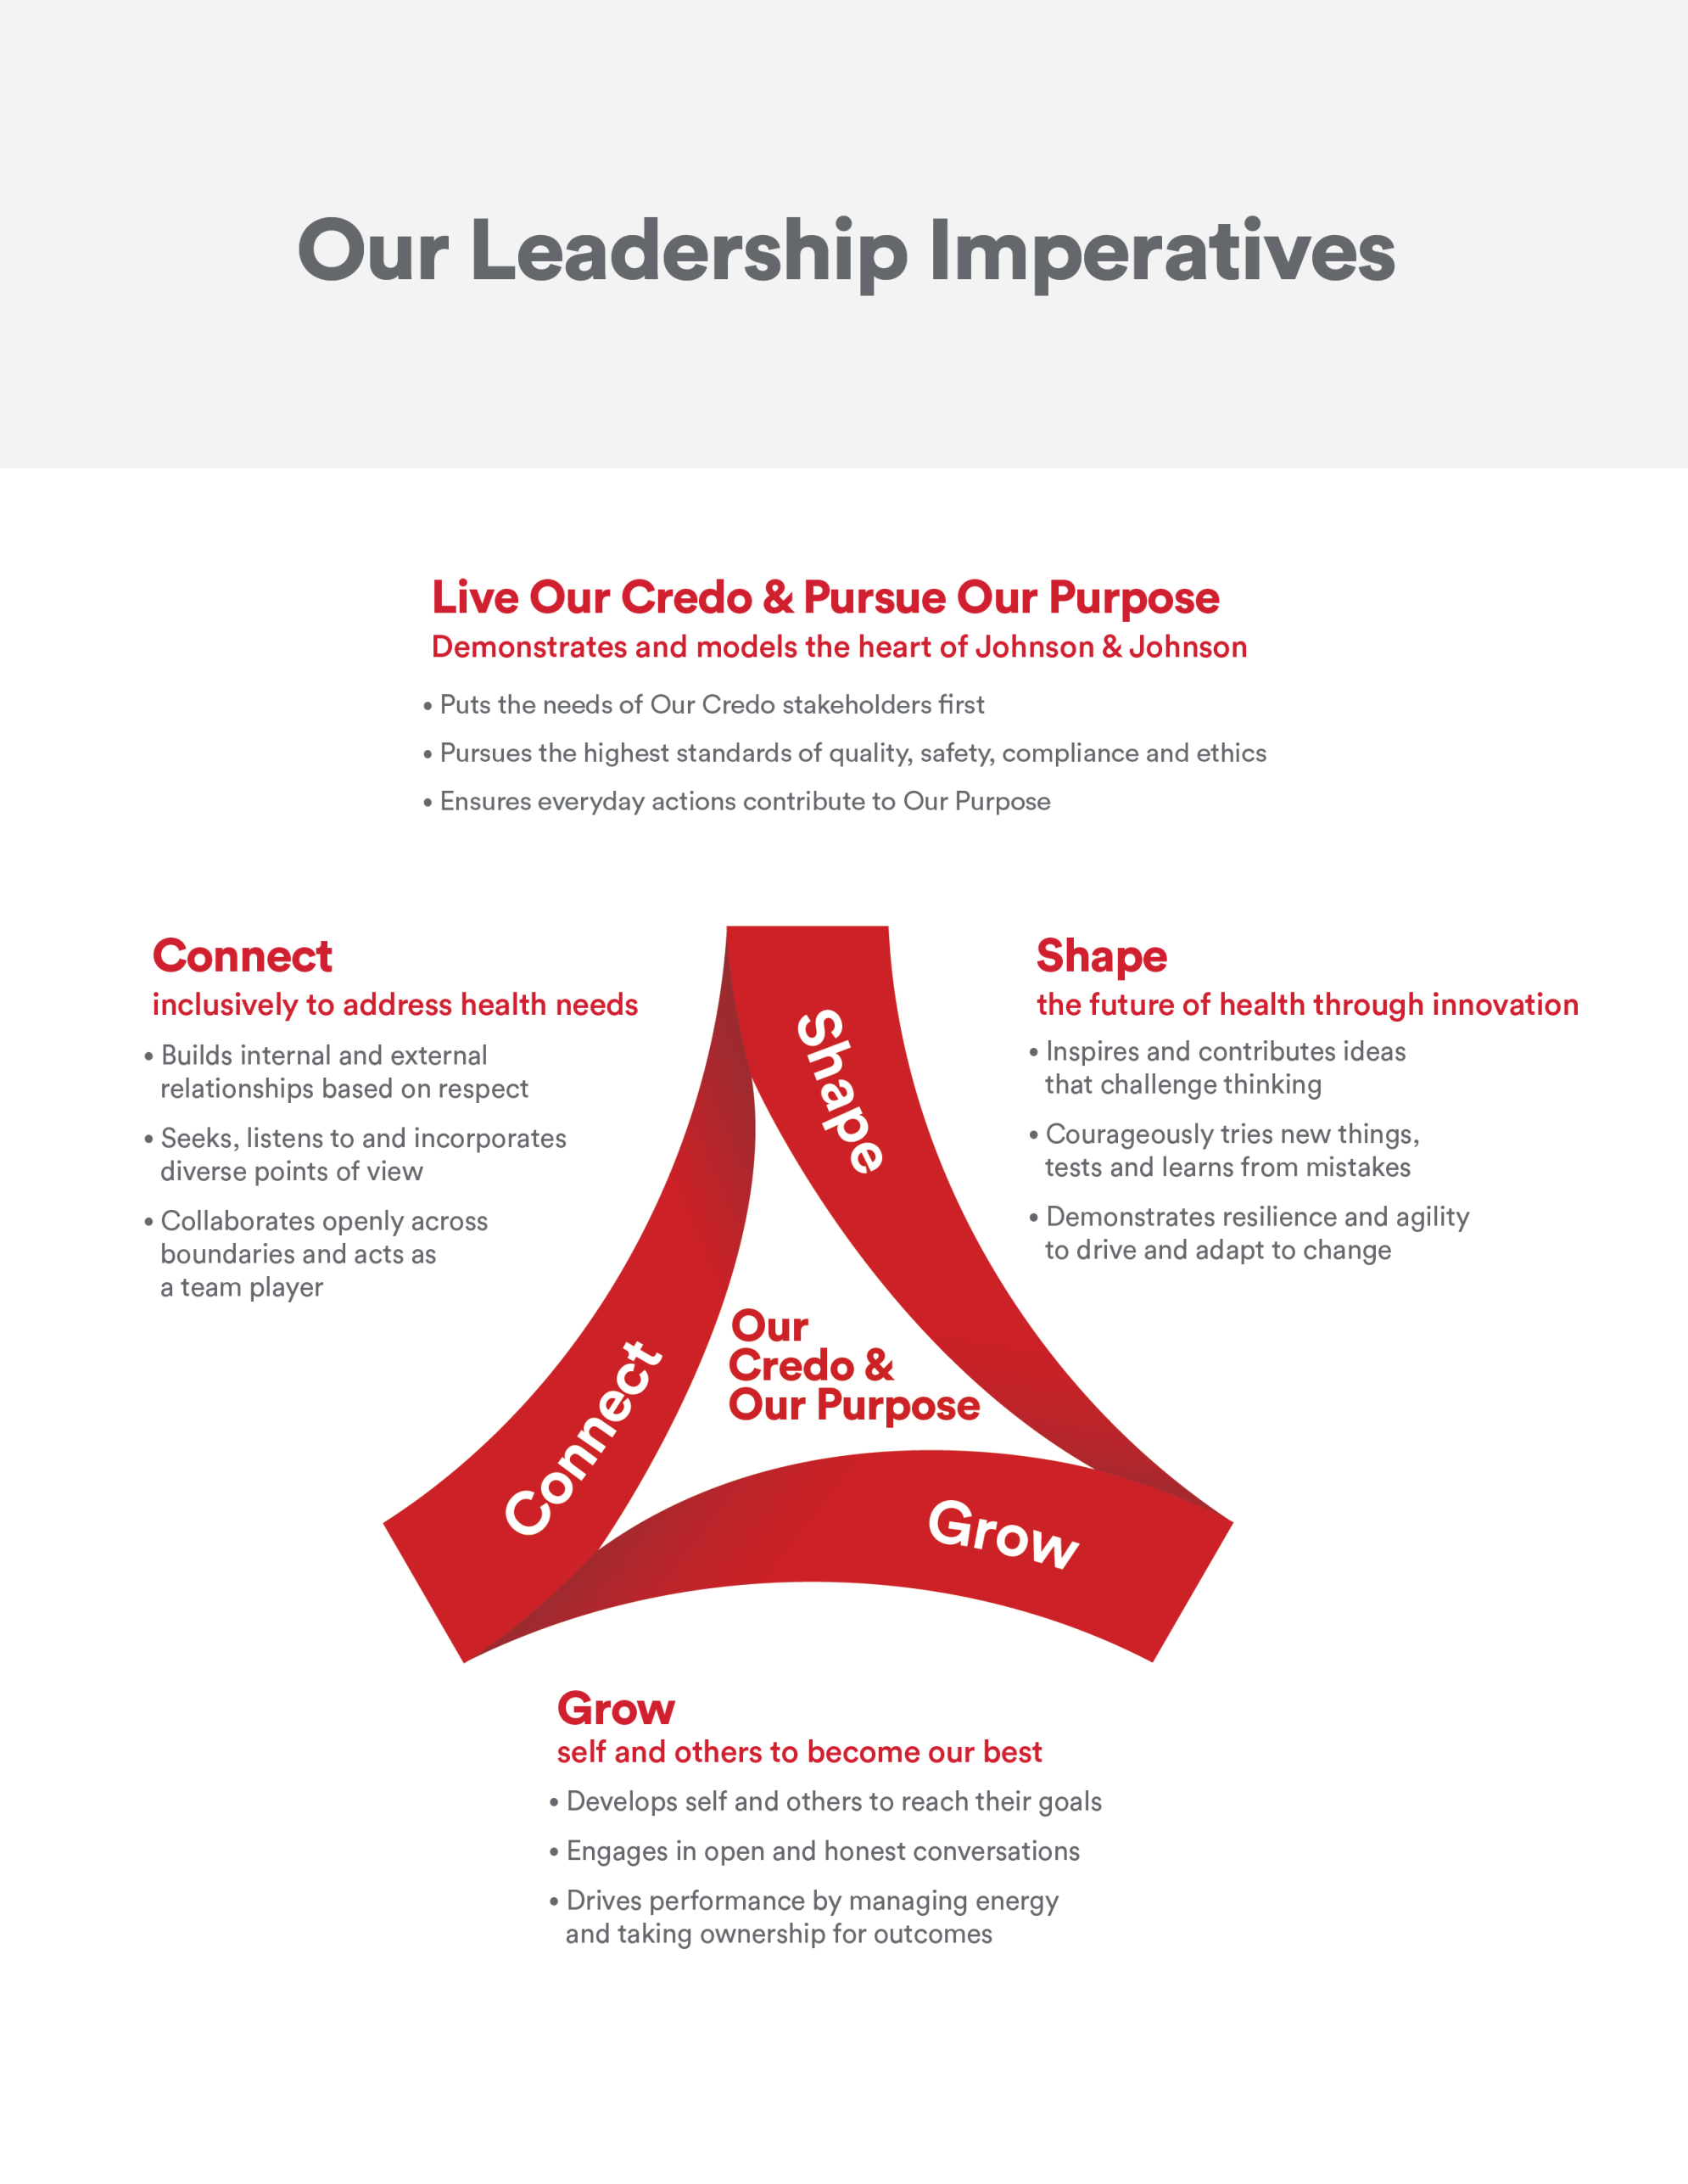 Our Leadership Imperatives.png